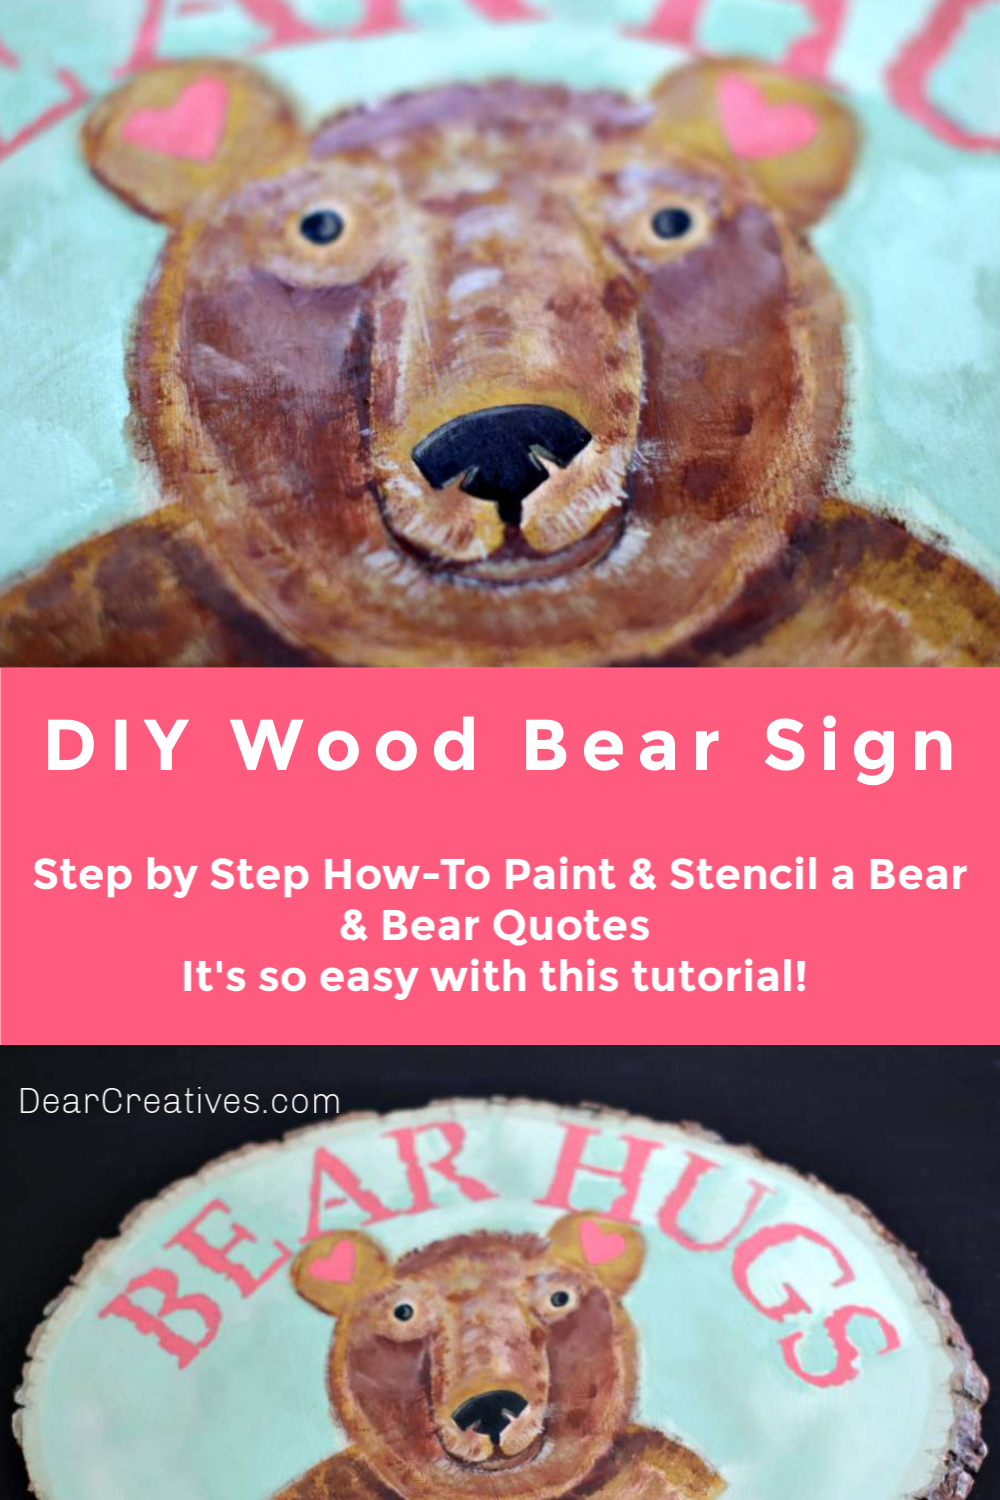 DIY Wood Bear Sign - How to paint a wood bear face and stencil a cute quote) Step by Step how-to with acrylic paint techniques. Tutorial at DearCreatives.com